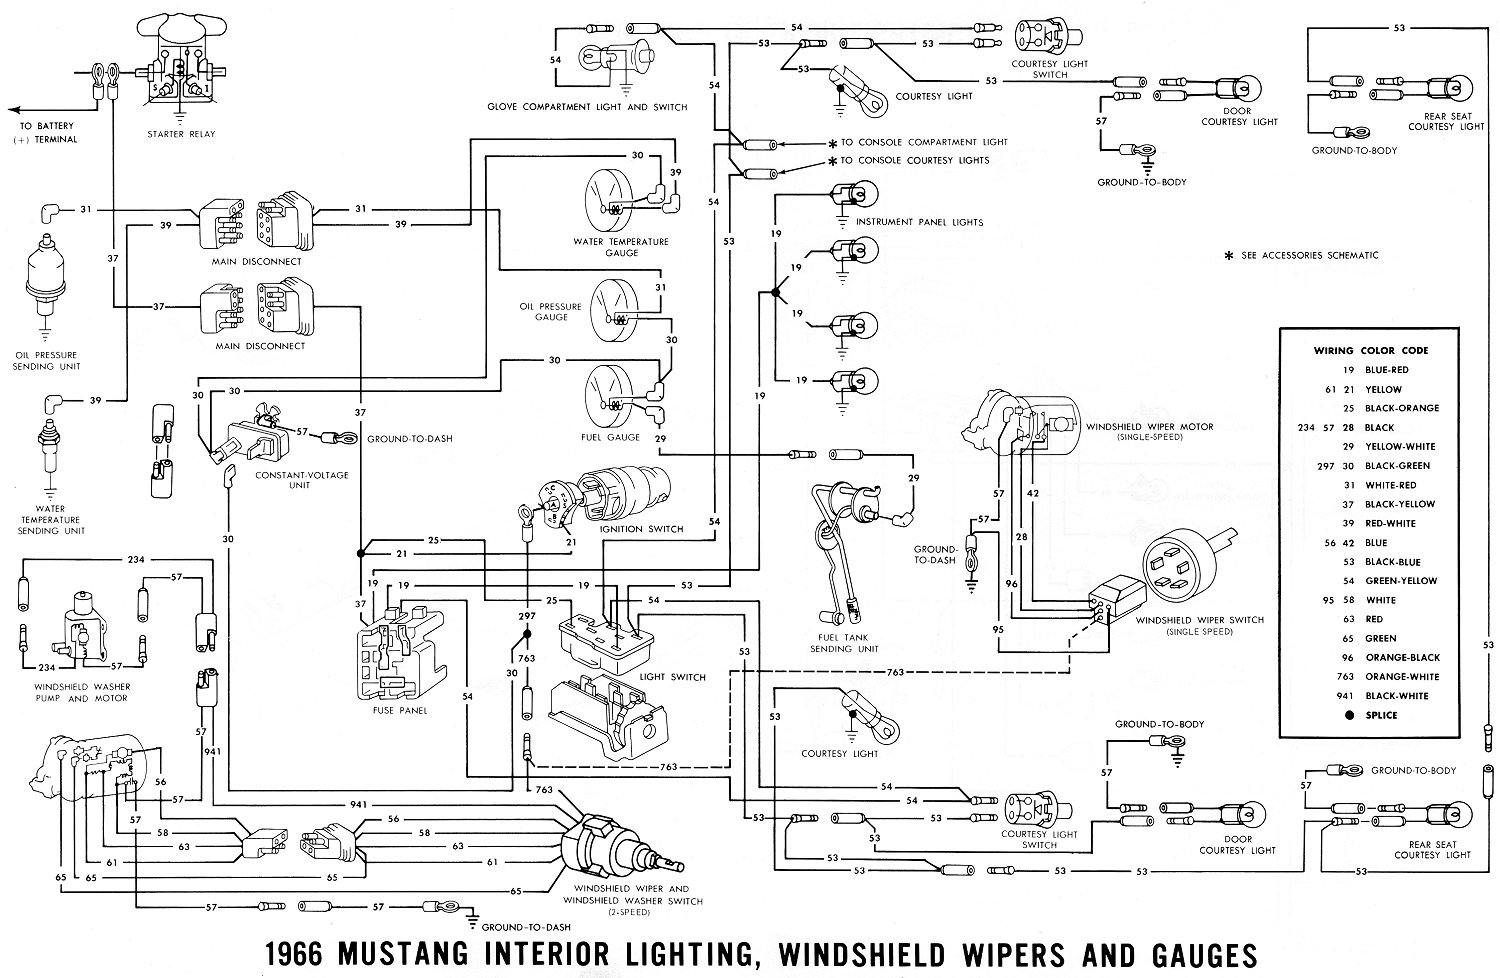 65 Mustang Voltage At Fuse Box Manual E Books 1966 Wiring Diagram1967 Ford Diagram 1993